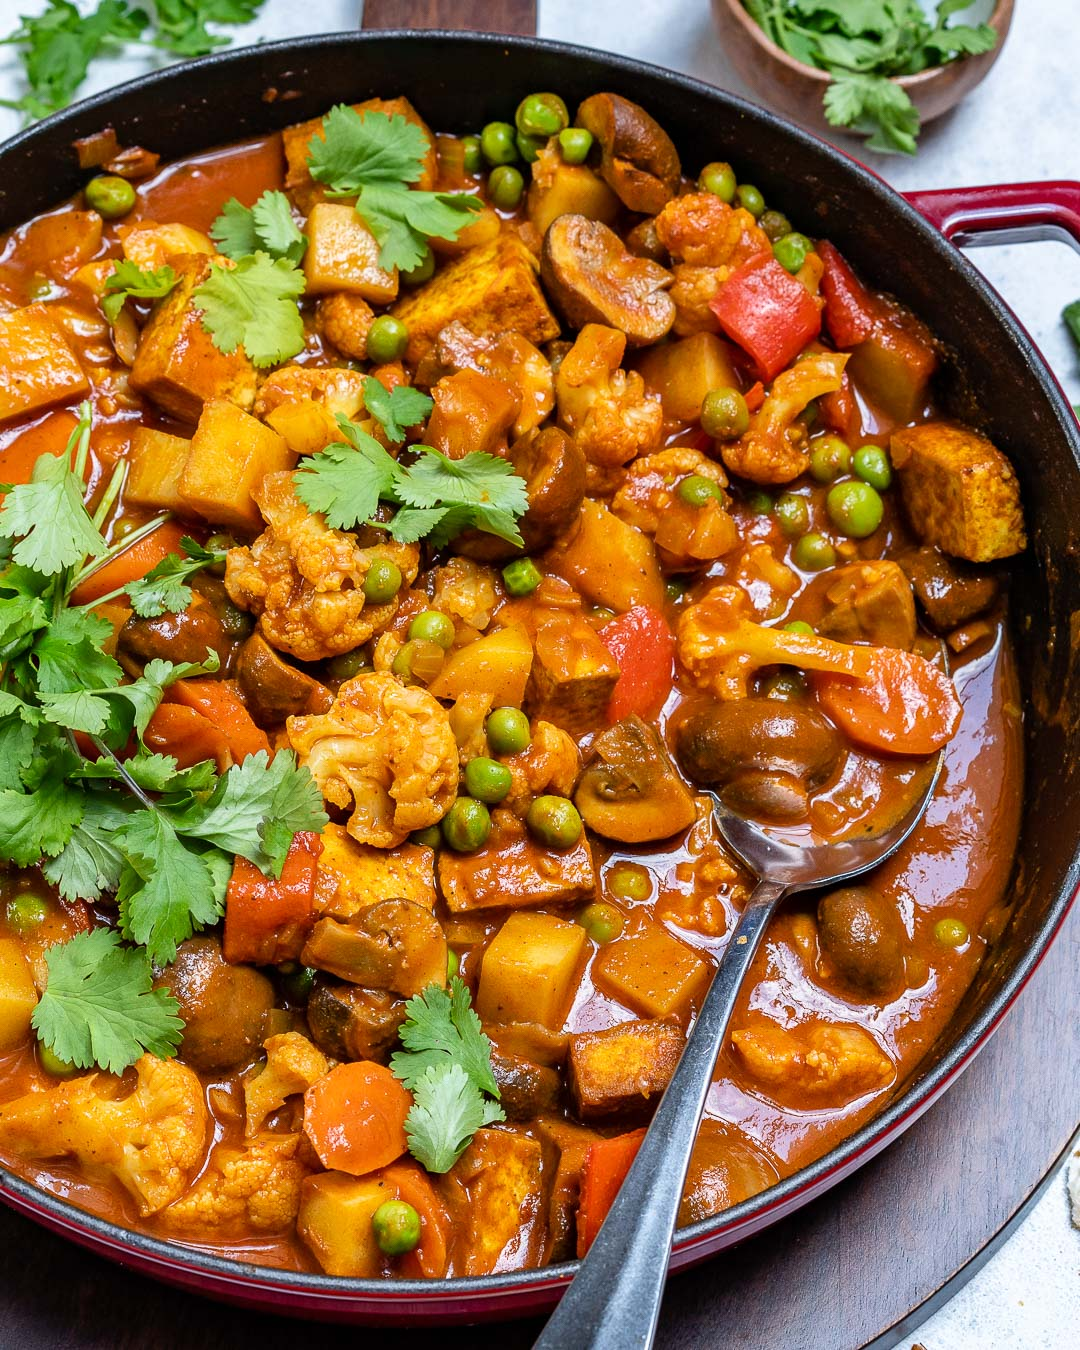 Vegan Tikka Masala Recipe With Tofu And Cauliflower-9